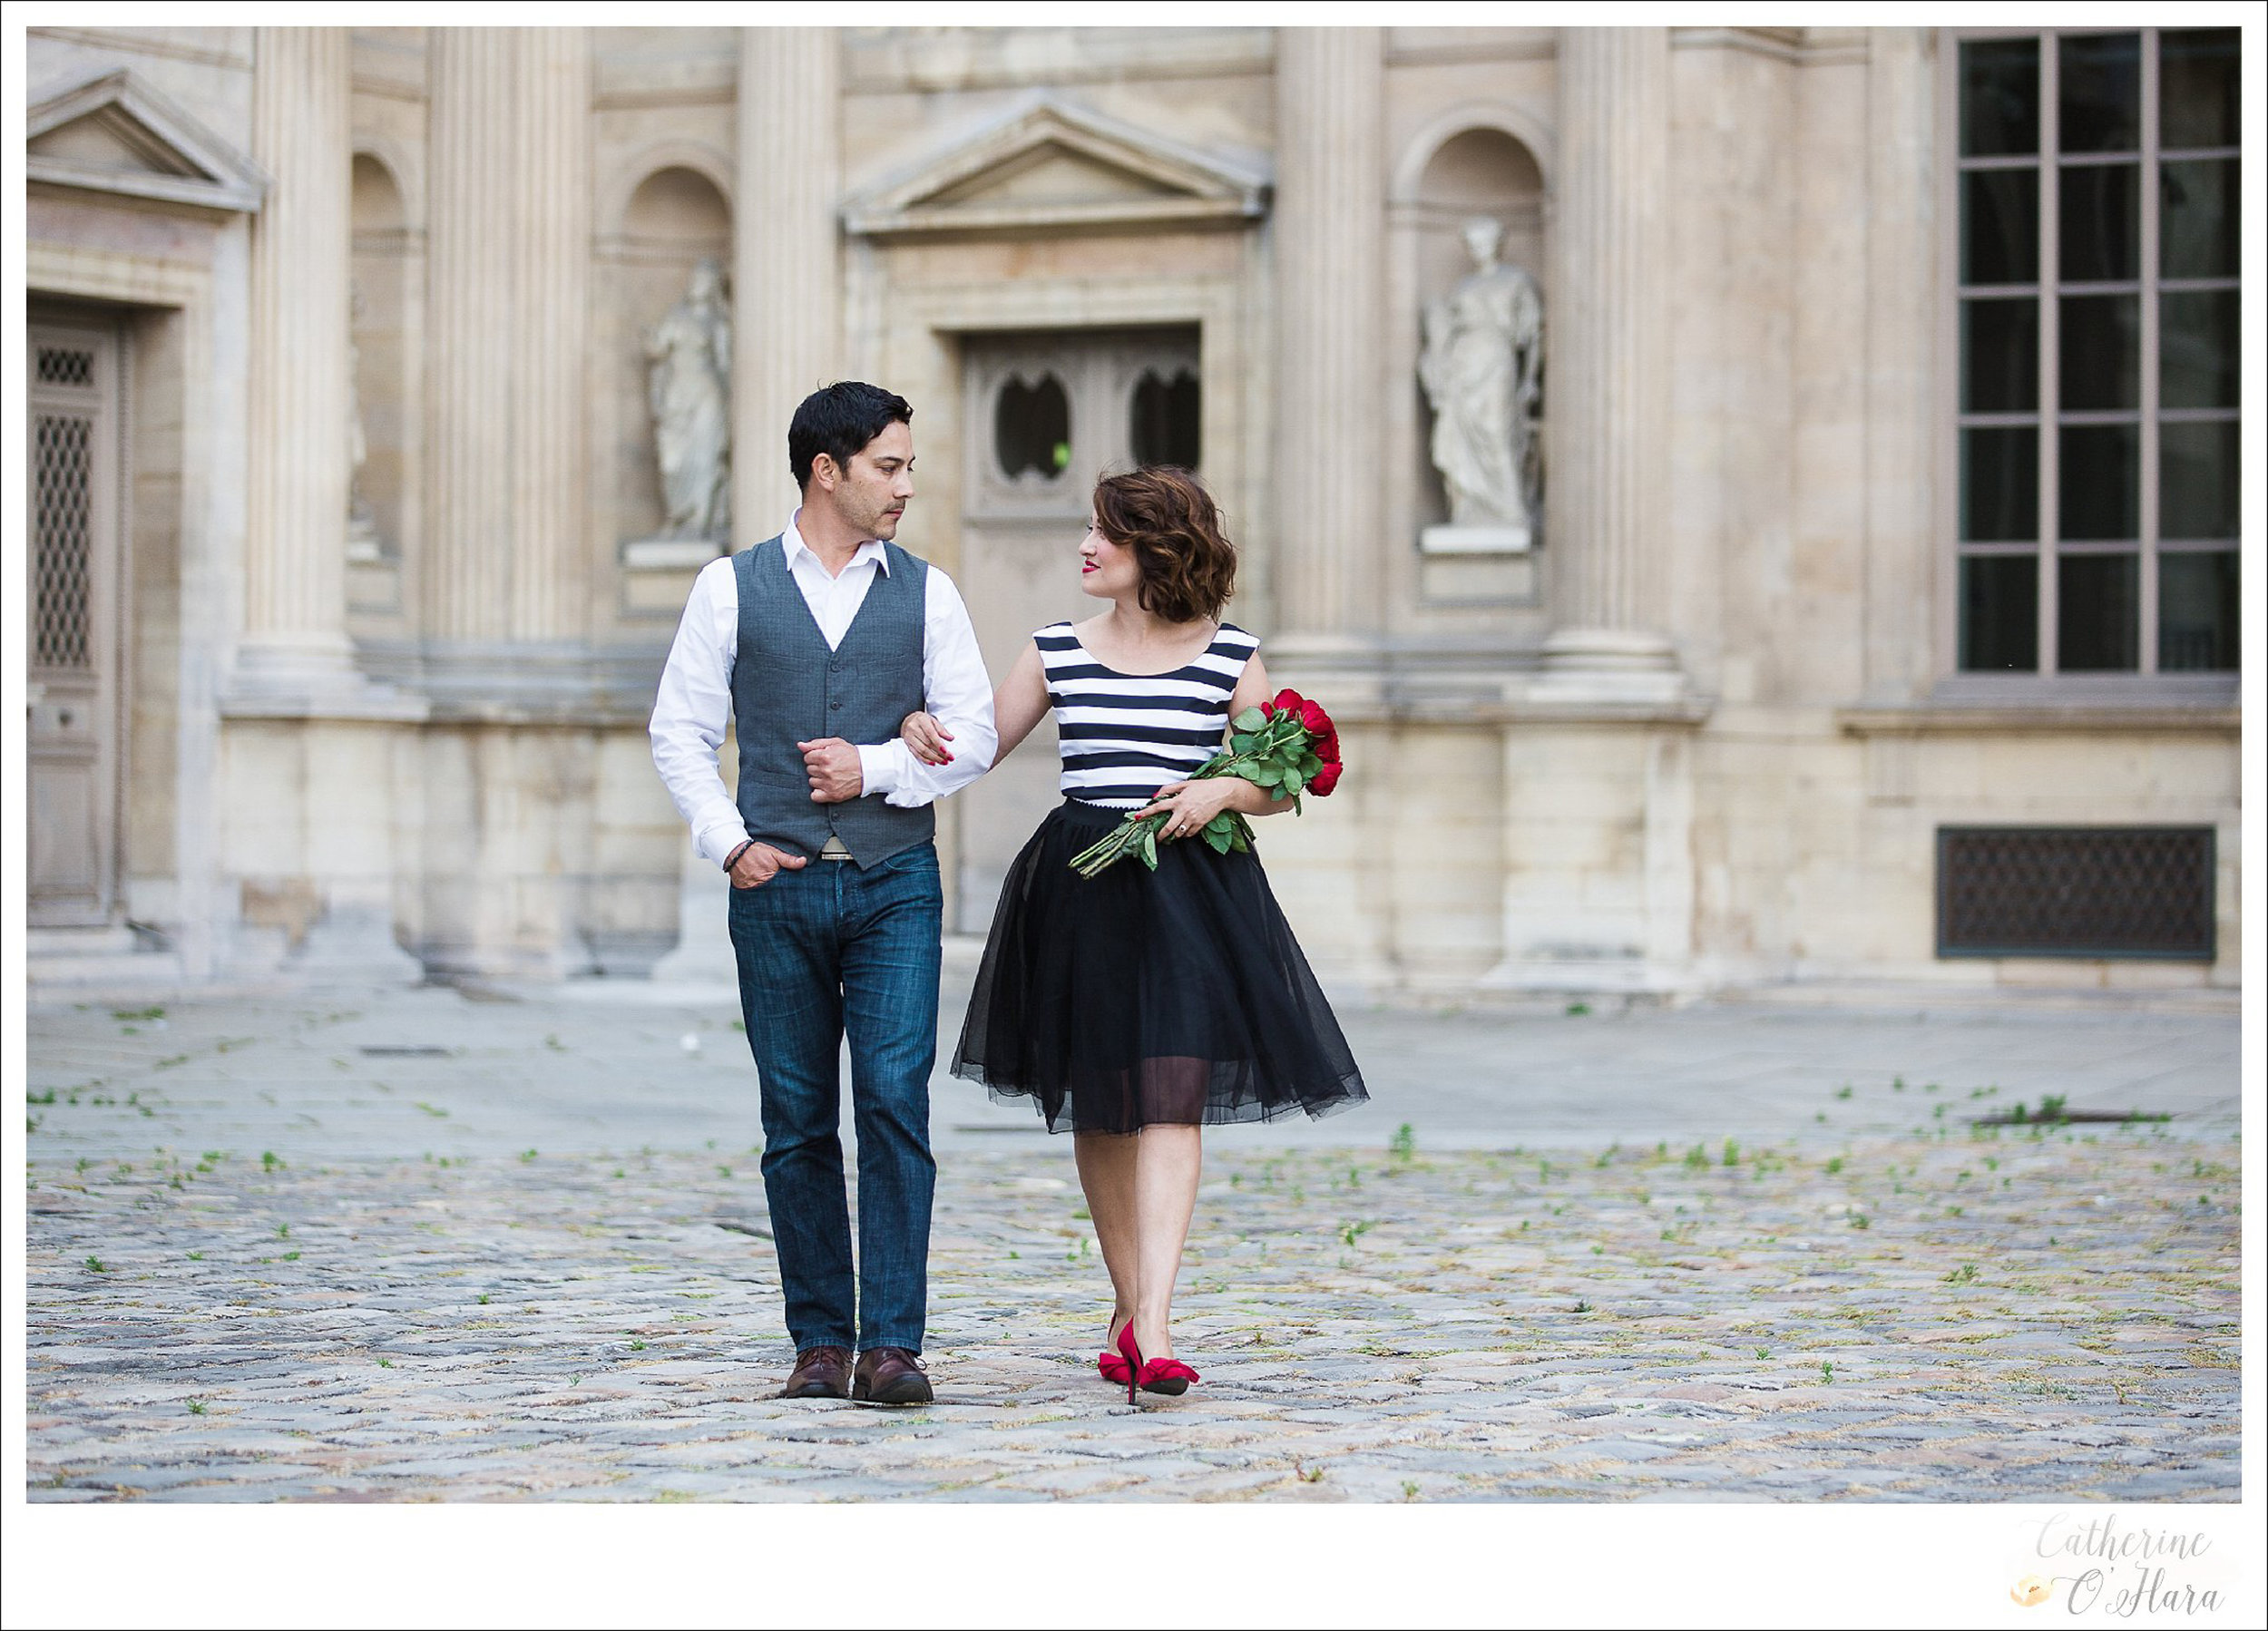 01-paris-engagement-photographer-france.jpg